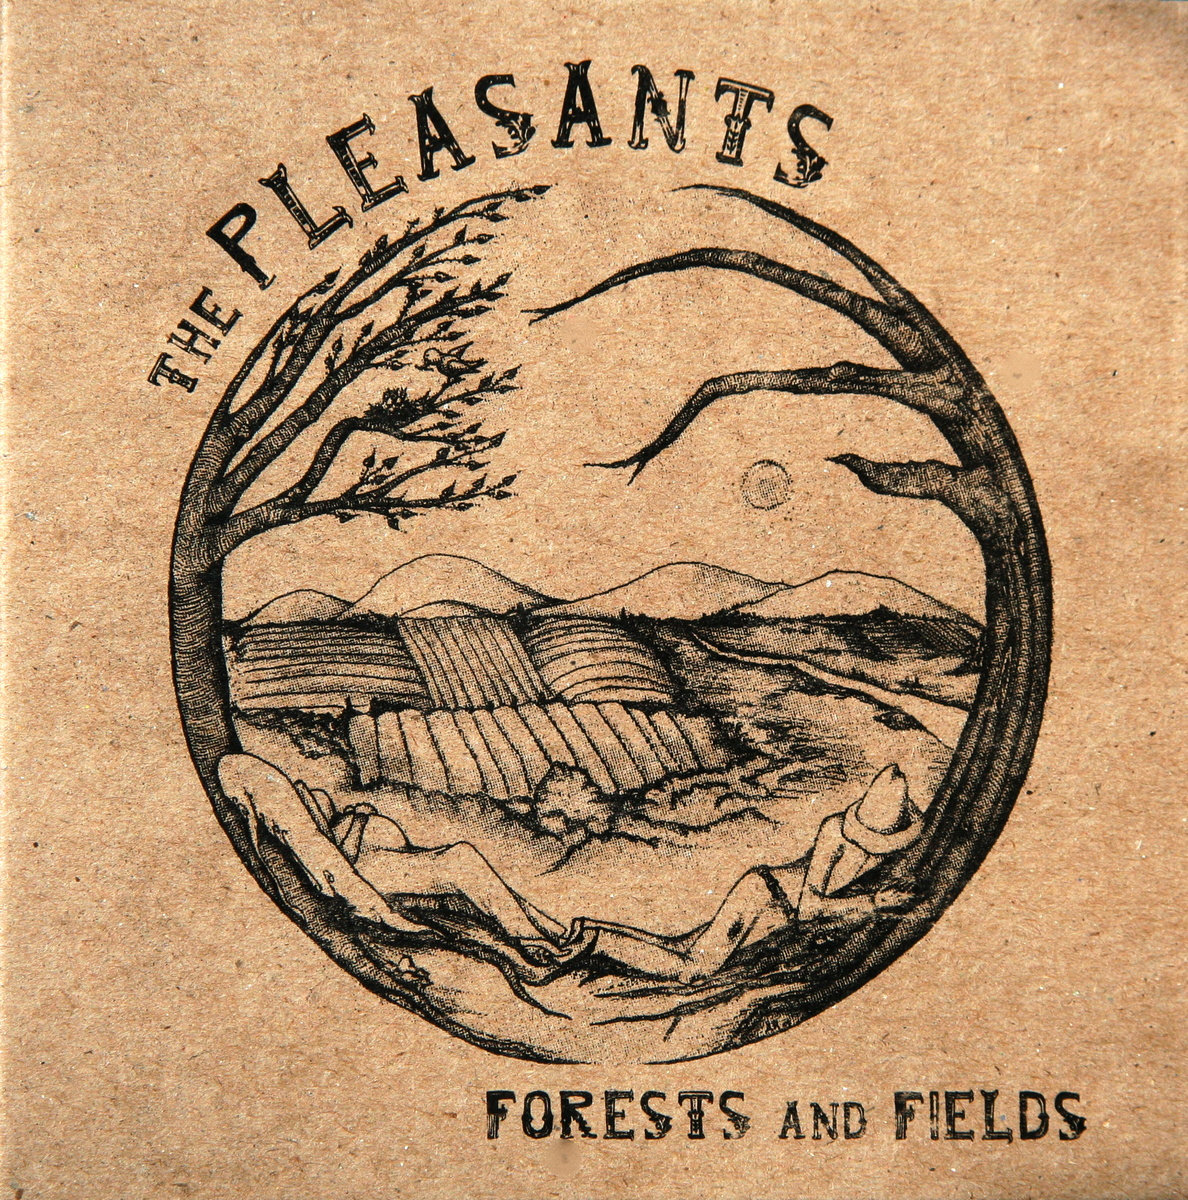 The Pleasants - Forests and Fields | Amanda Rogers